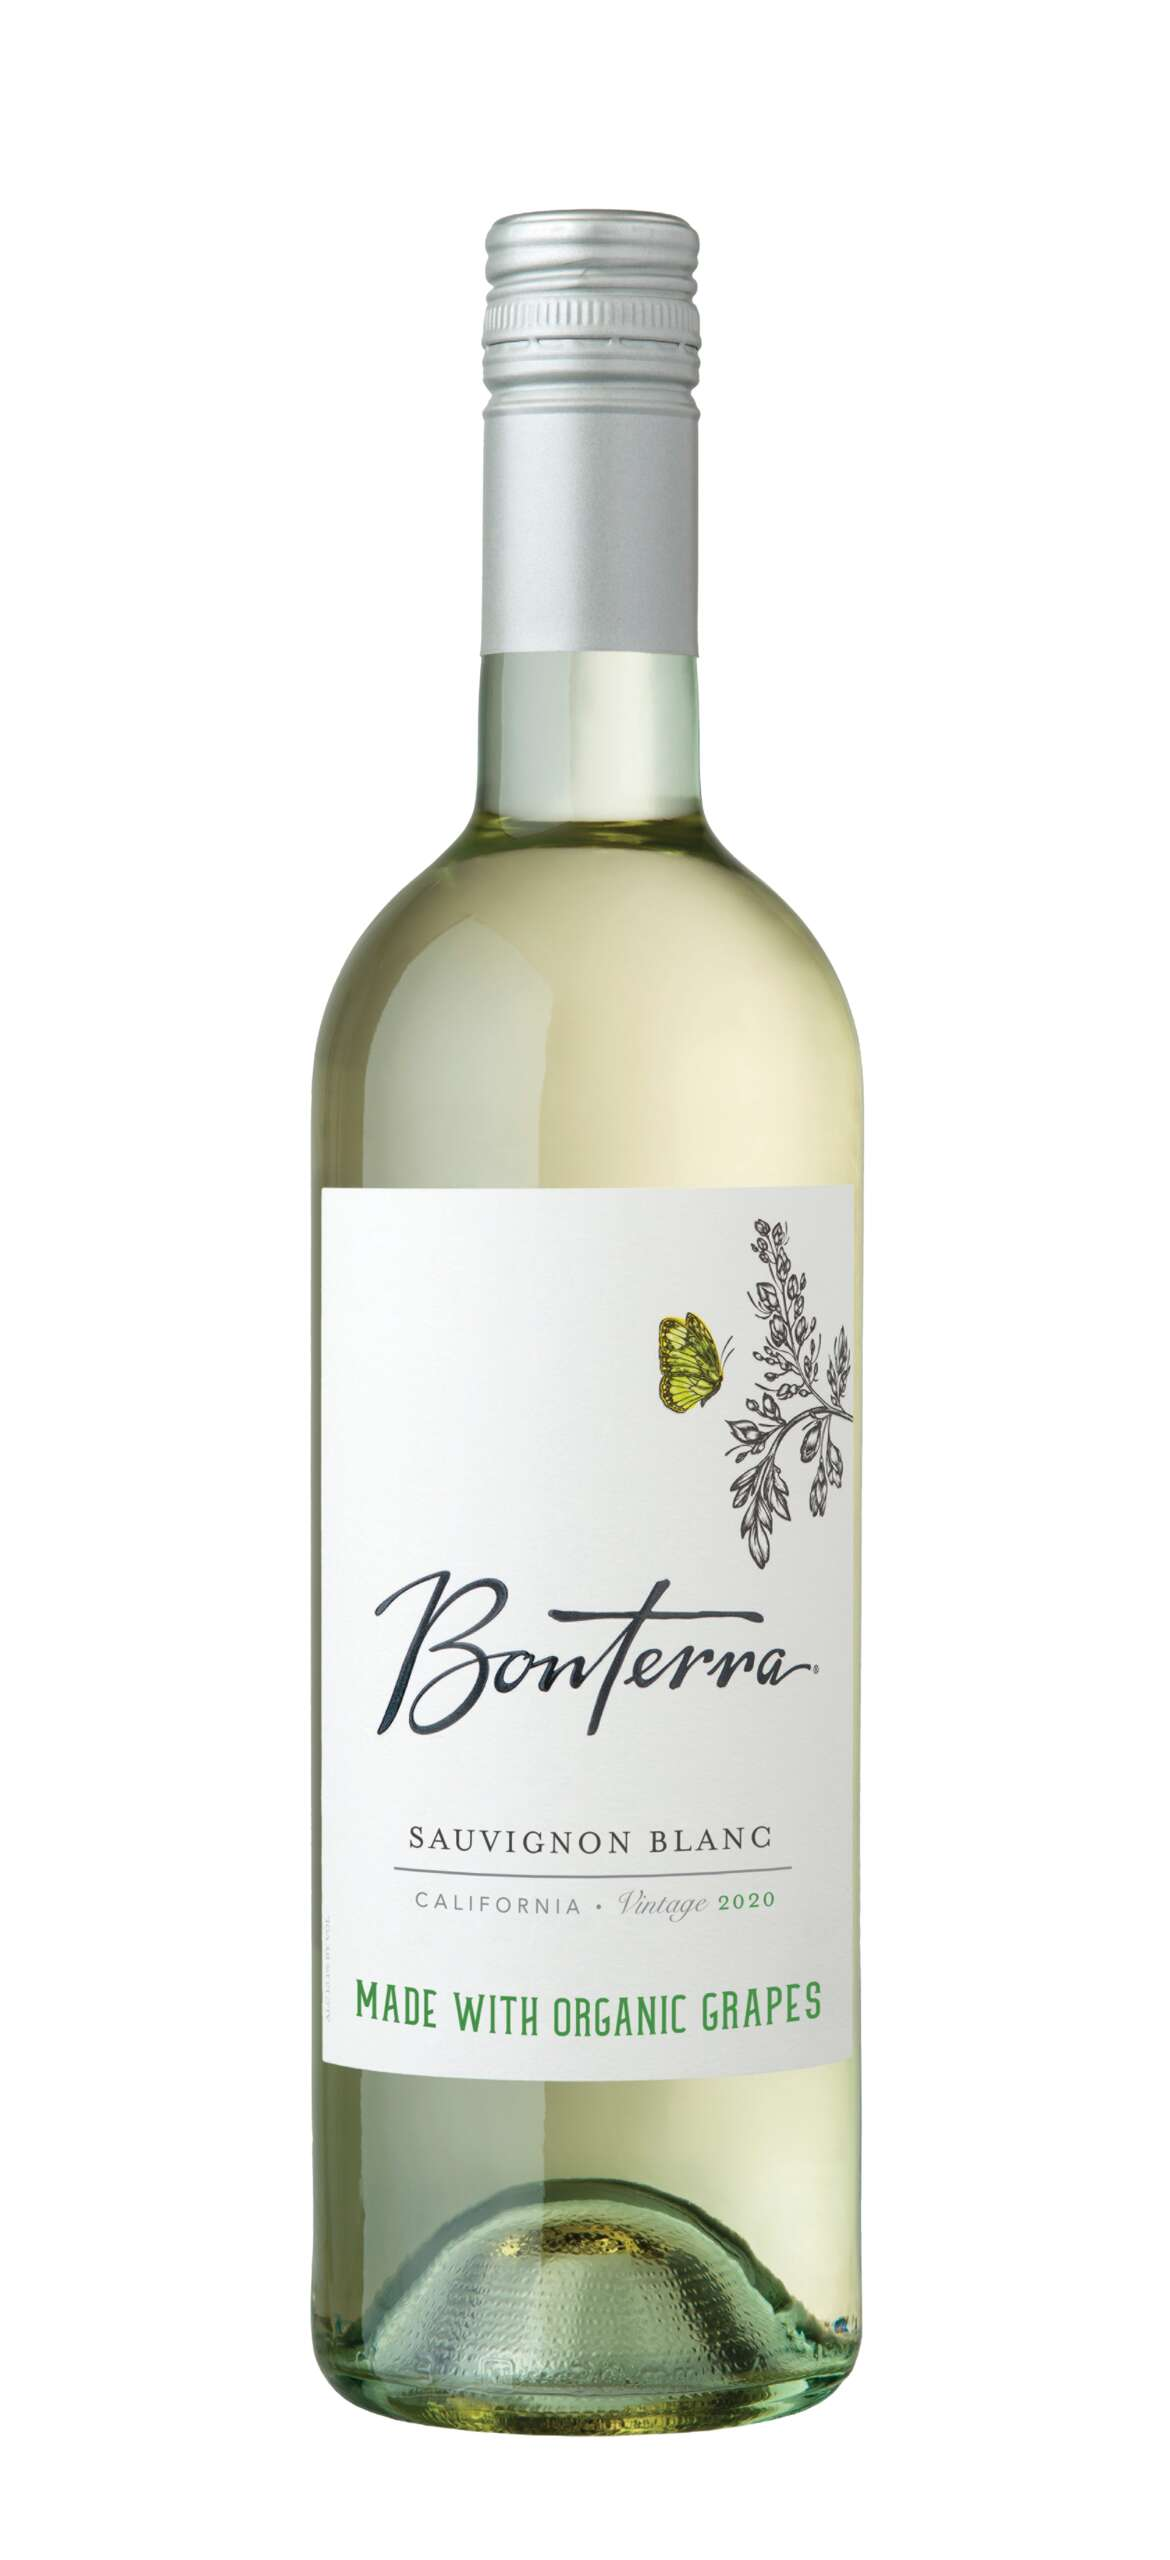 2020 SAUVIGNON BLANC California Crafted From Certified Organically Grown Grapes